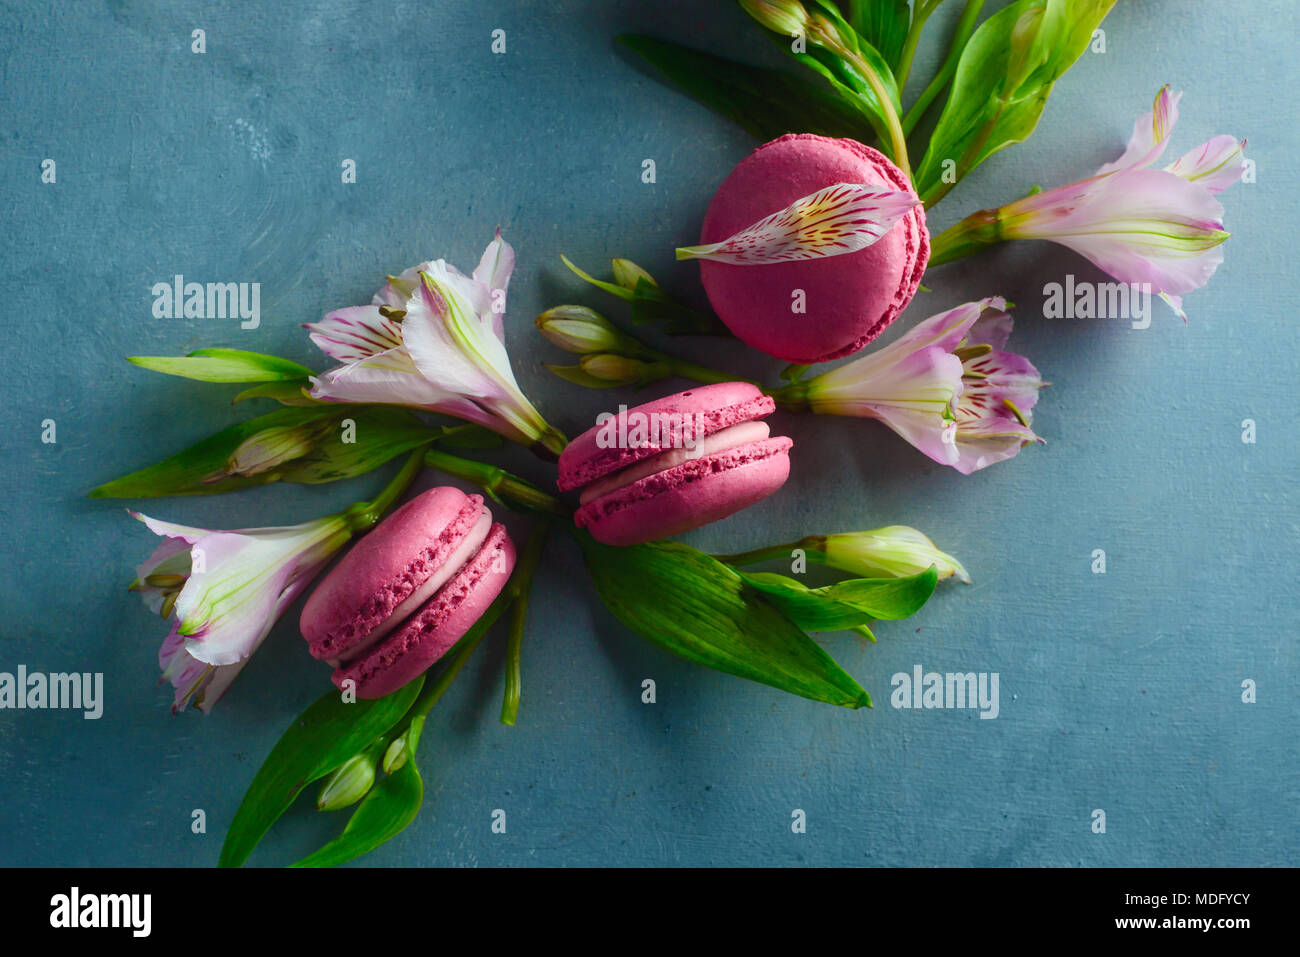 Pink macaroons decorated with pink and white alstroemeria flowers. Romantic French dessert on stone background with copy space. - Stock Image